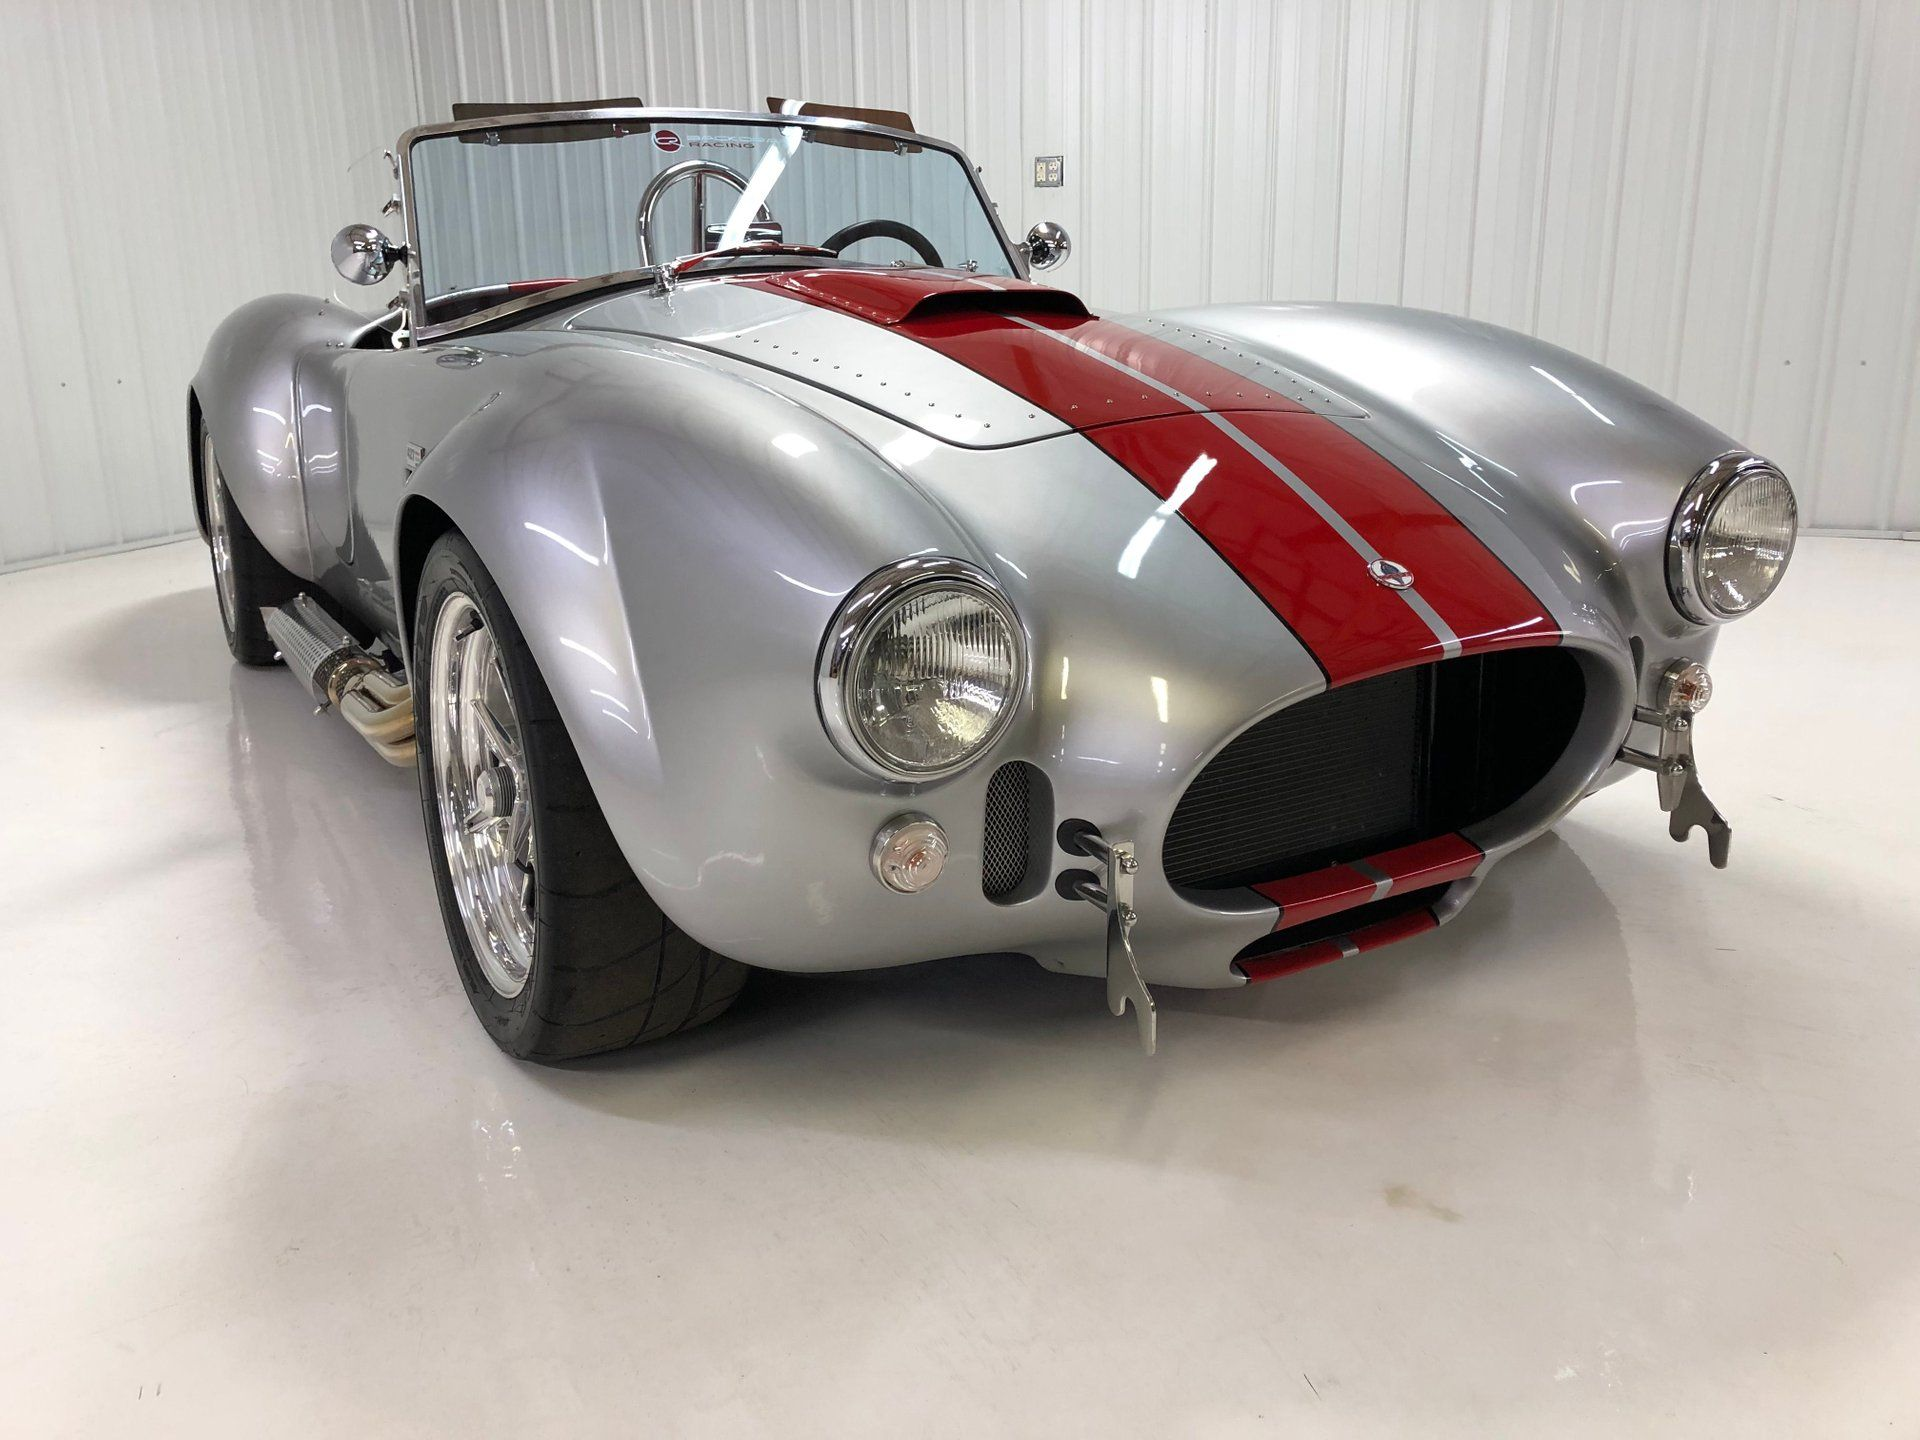 1965 Backdraft Cobra Has A Real Bite